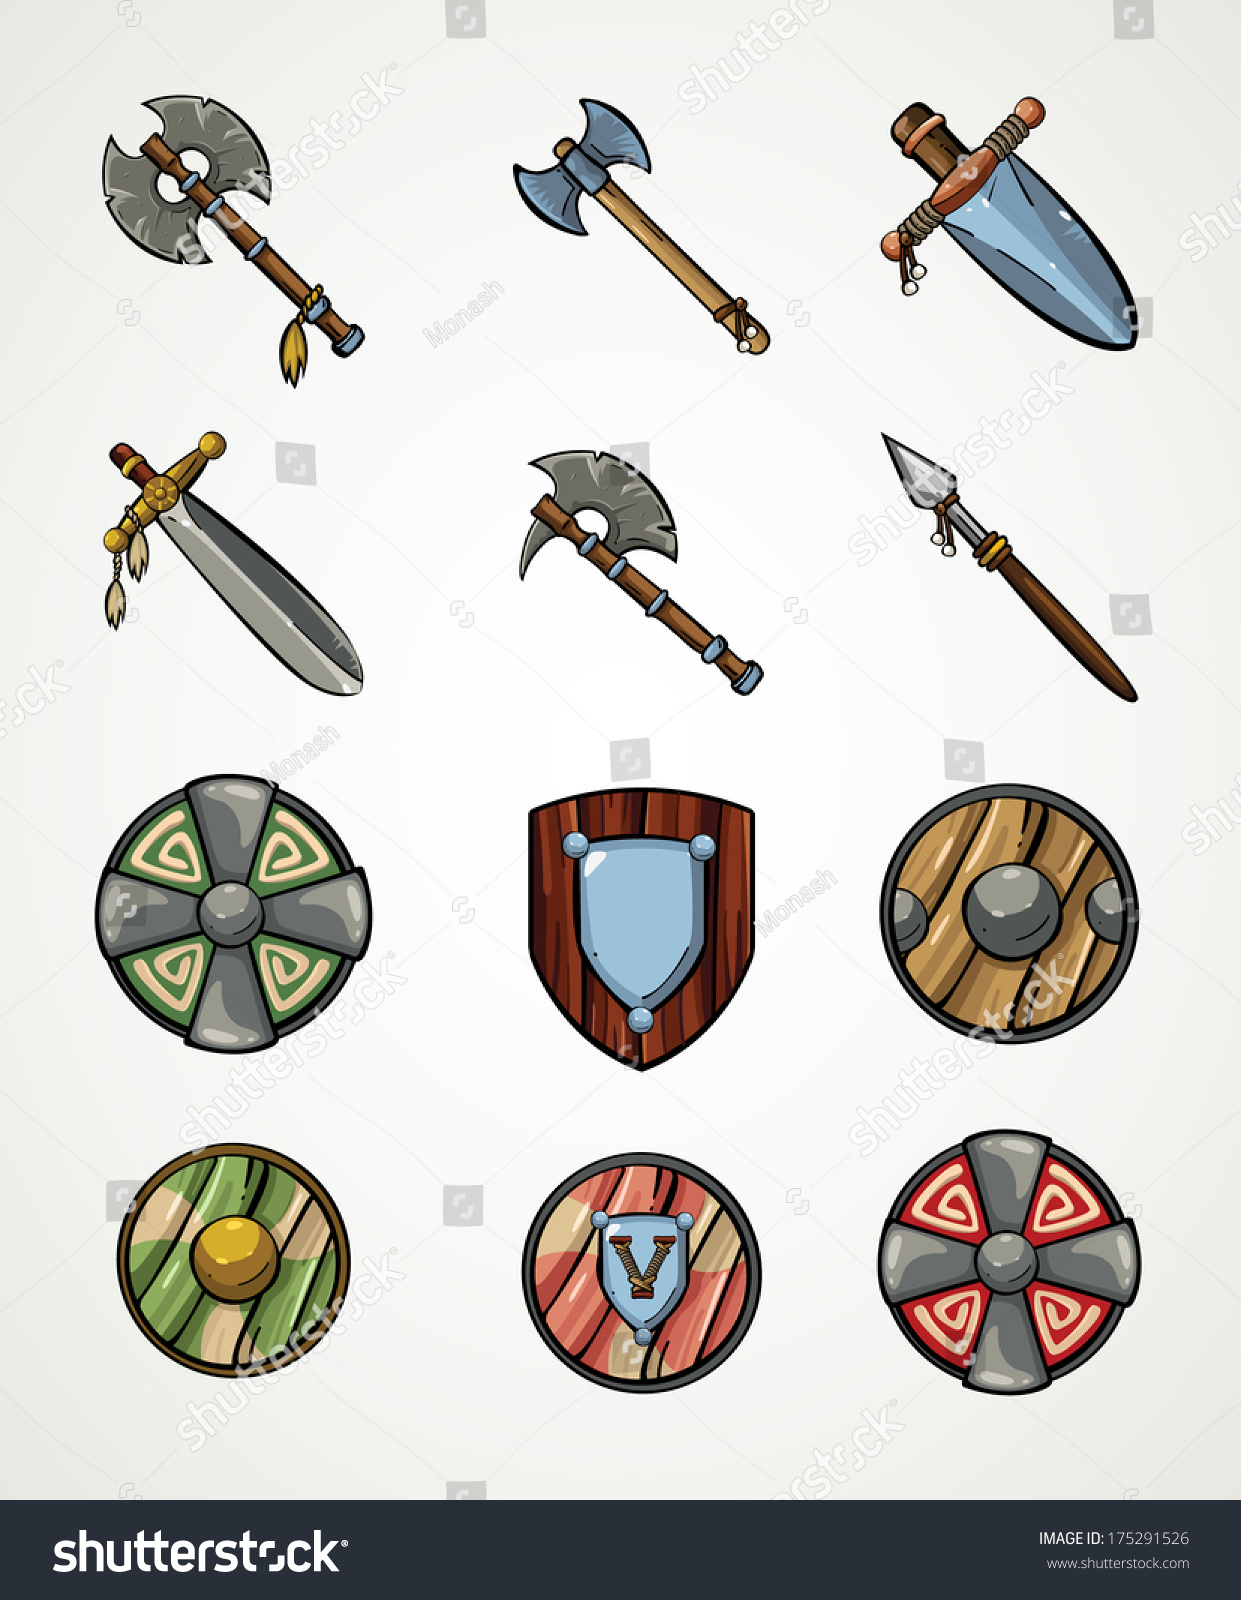 set cartoon viking weapons medieval weapons game stock vector 175291526 shutterstock. Black Bedroom Furniture Sets. Home Design Ideas